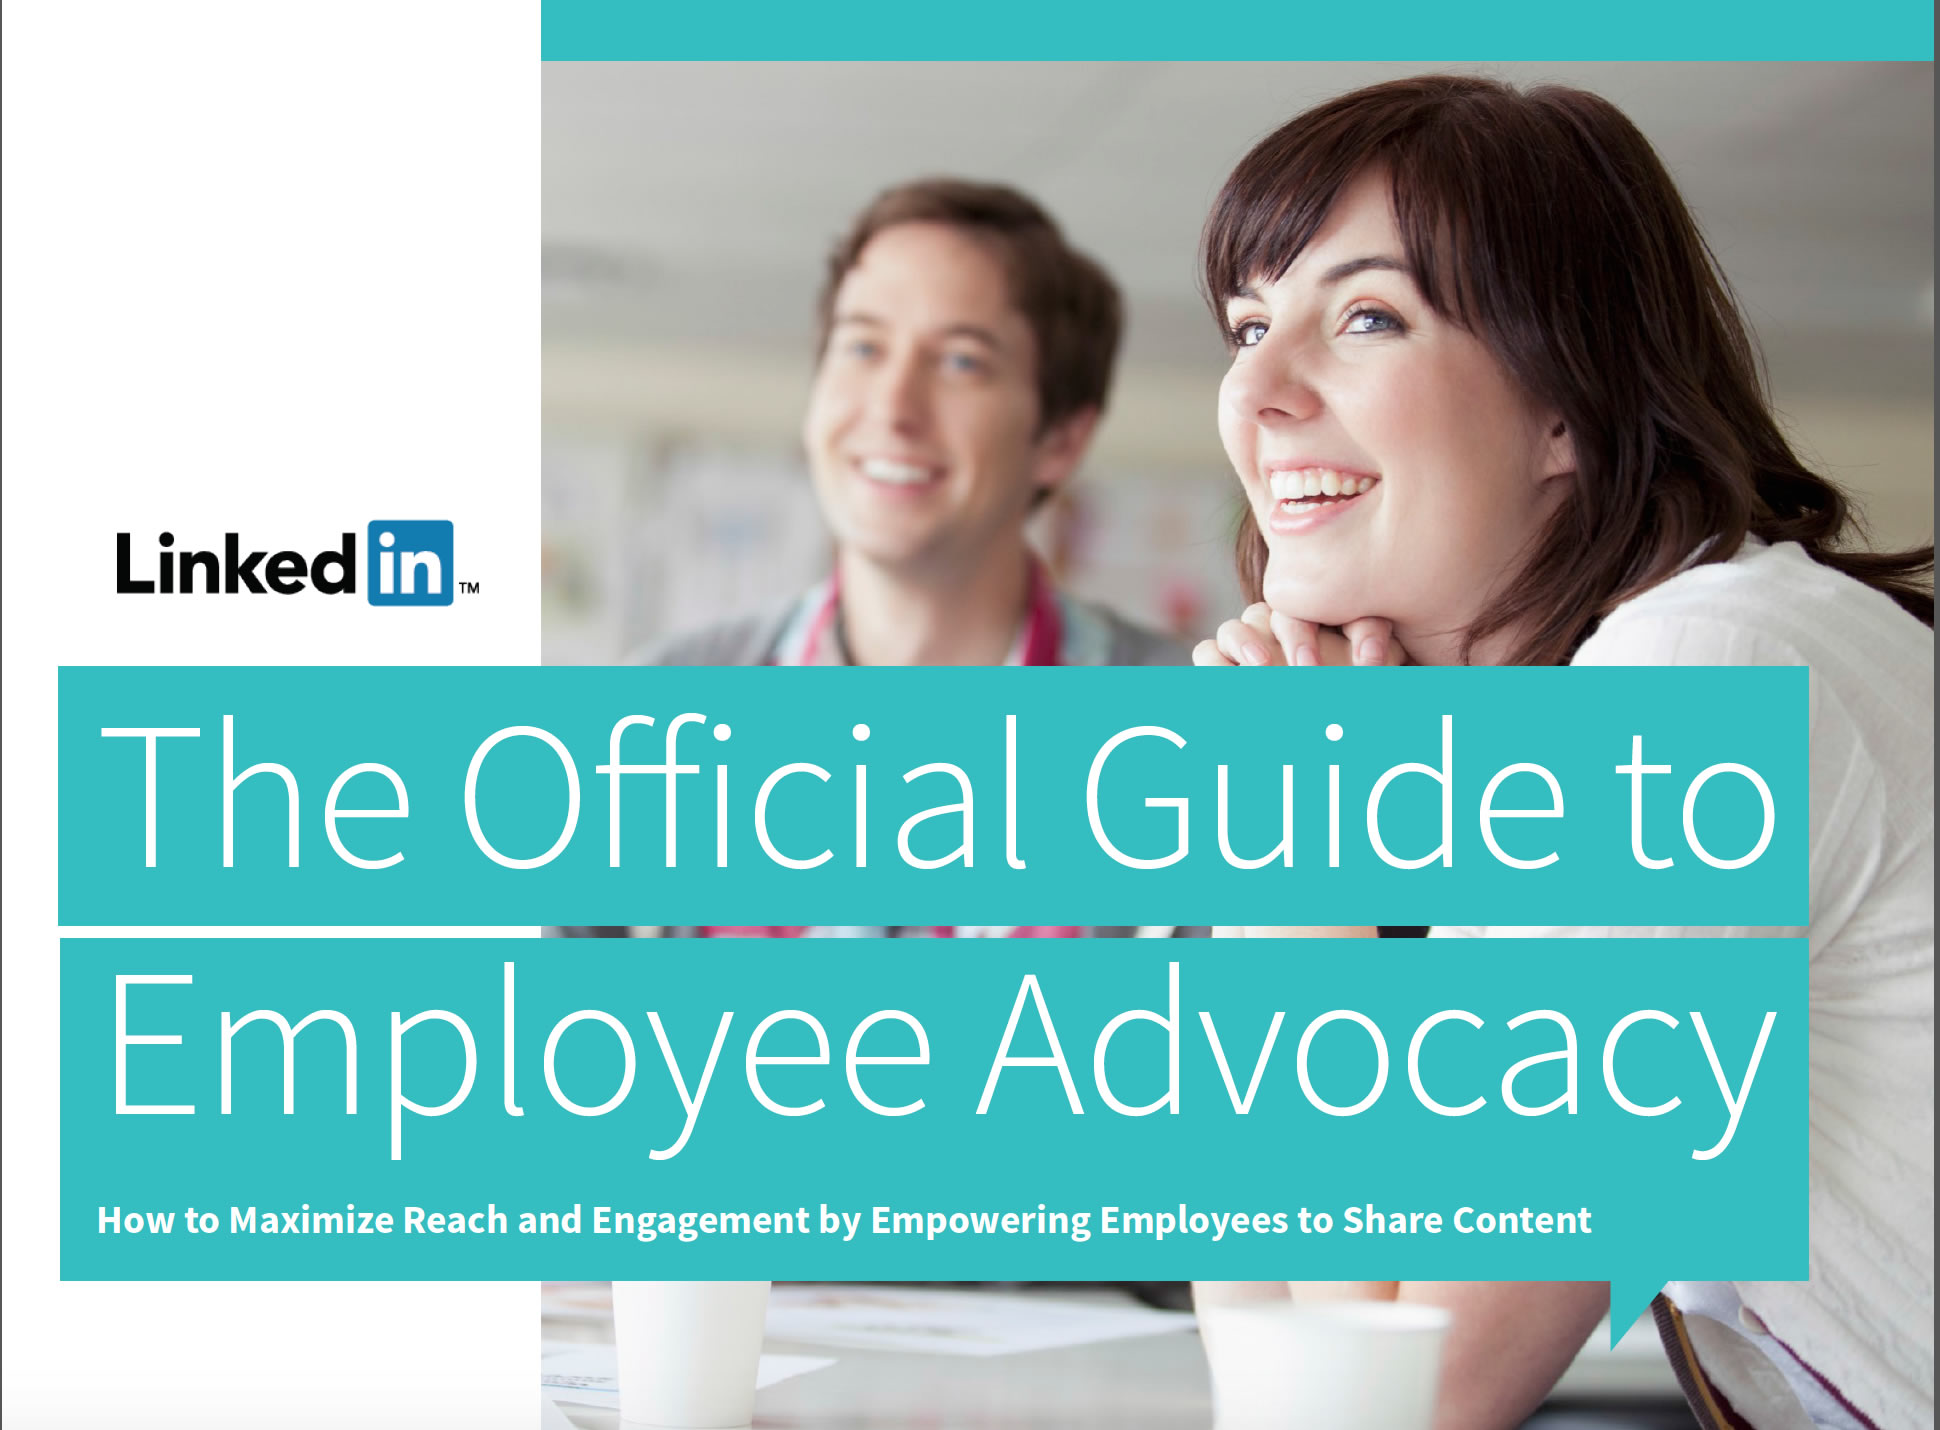 linkedin-elevate-official-guide-employee-advocacy-cheryl-burgess